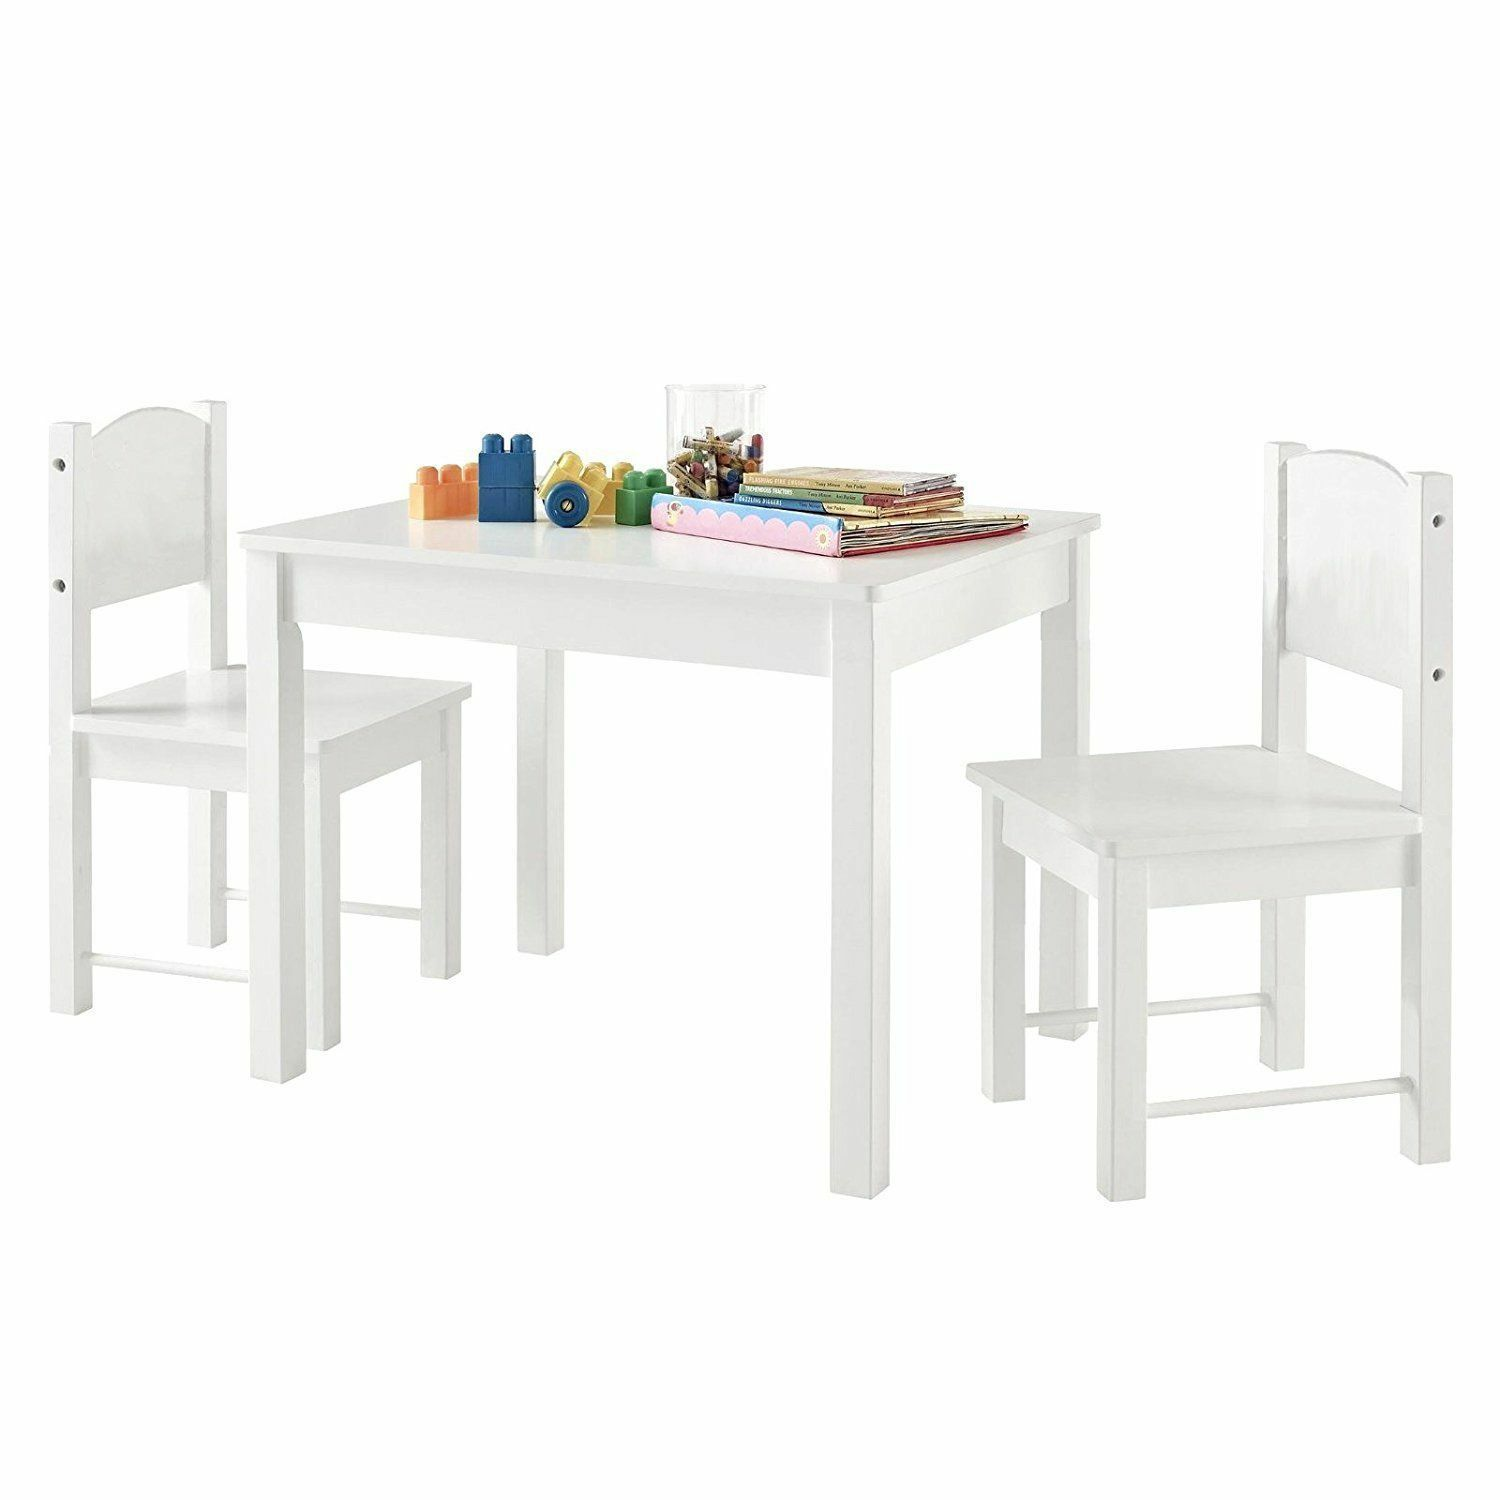 Details About Kids Childrens Table And 2 Chairs Set For Boys Or Girls Best Gift Birthday Xmas Kids Wooden Table Kids Table And Chairs Childrens Table